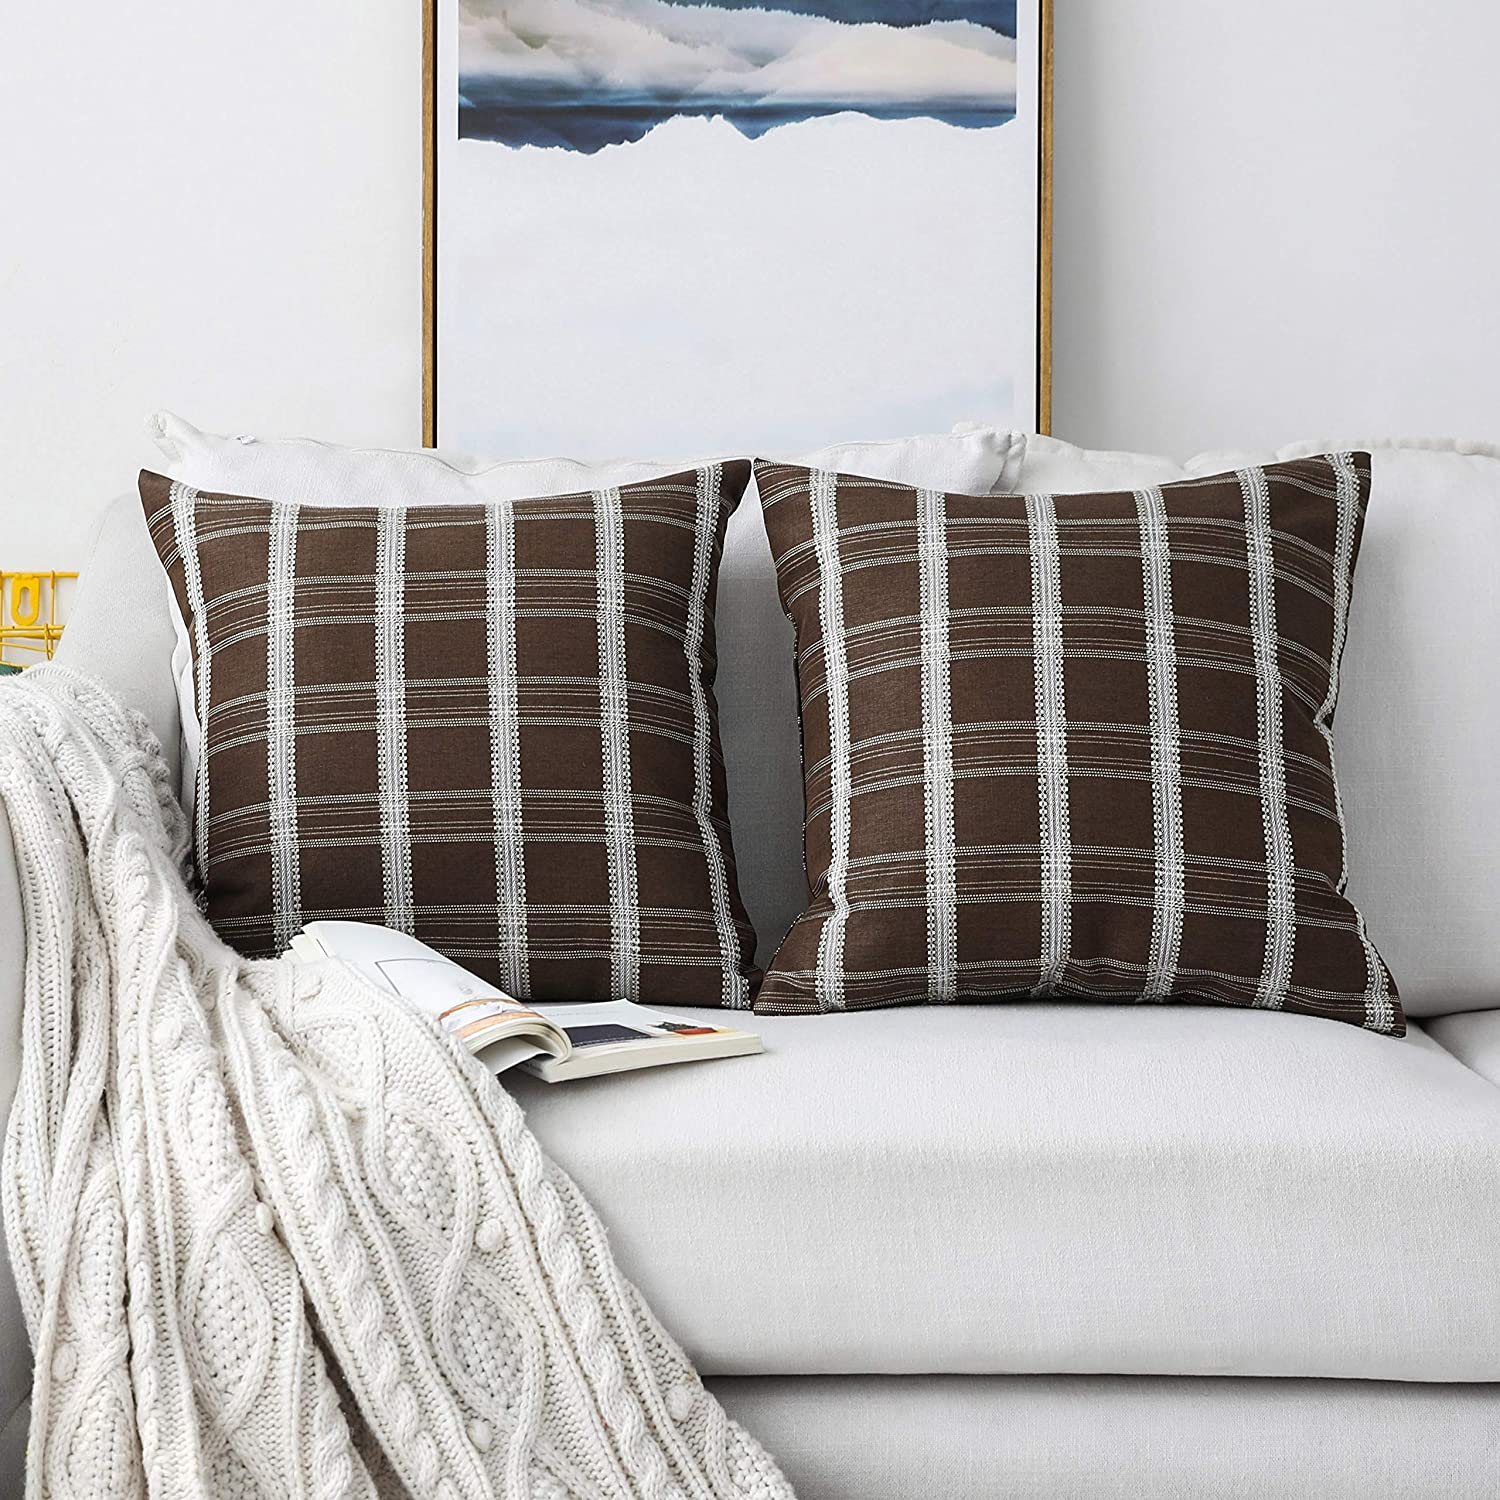 Home Brilliant Cushion Covers Decor Striped Checker Decorative Throw Pillow Covers for Couch Bench Sofa, 2 Pack, 18 x 18, Brown